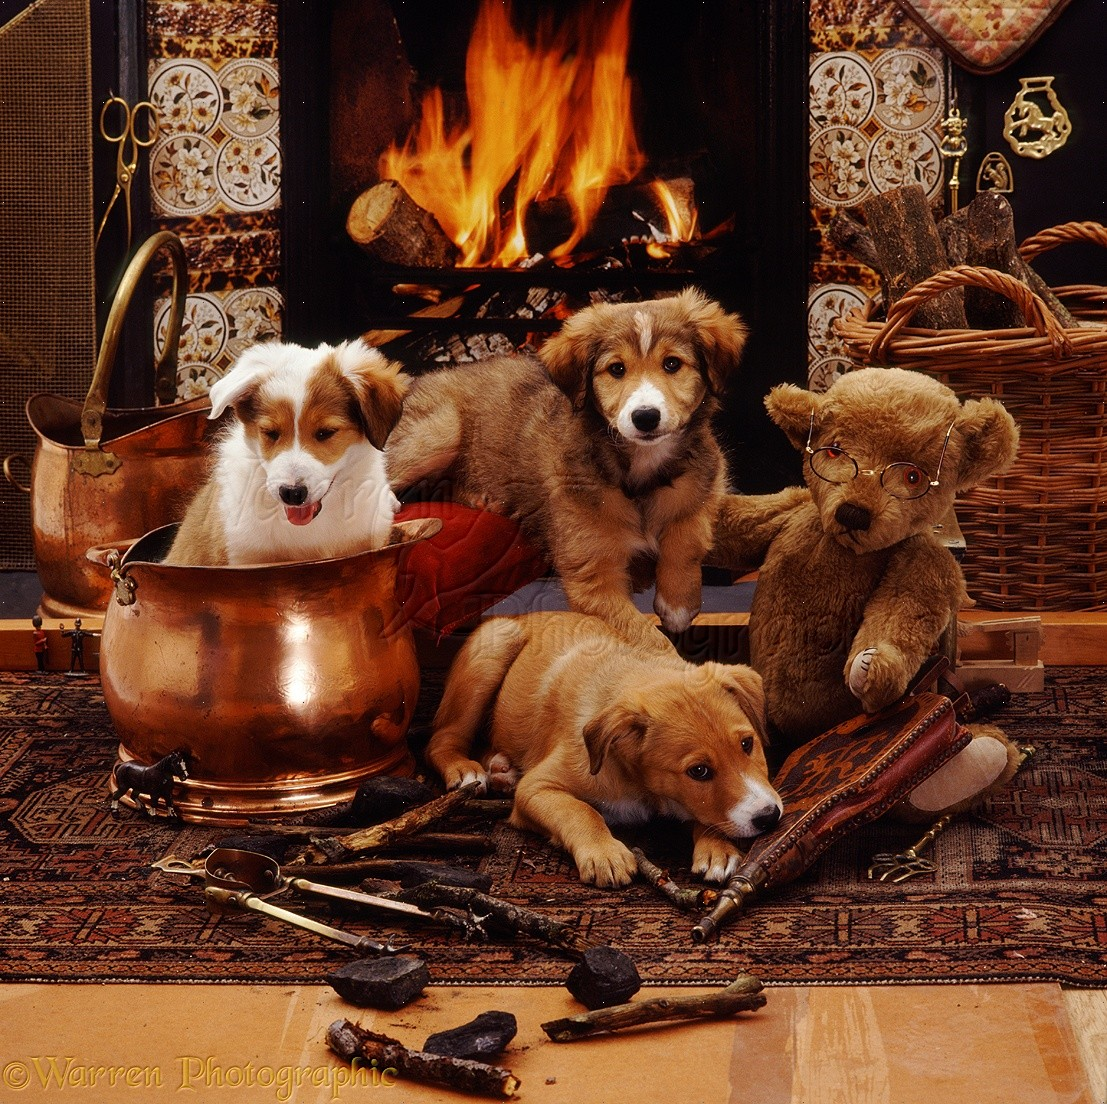 Dogs: Border Collie pups by fireplace photo WP09127